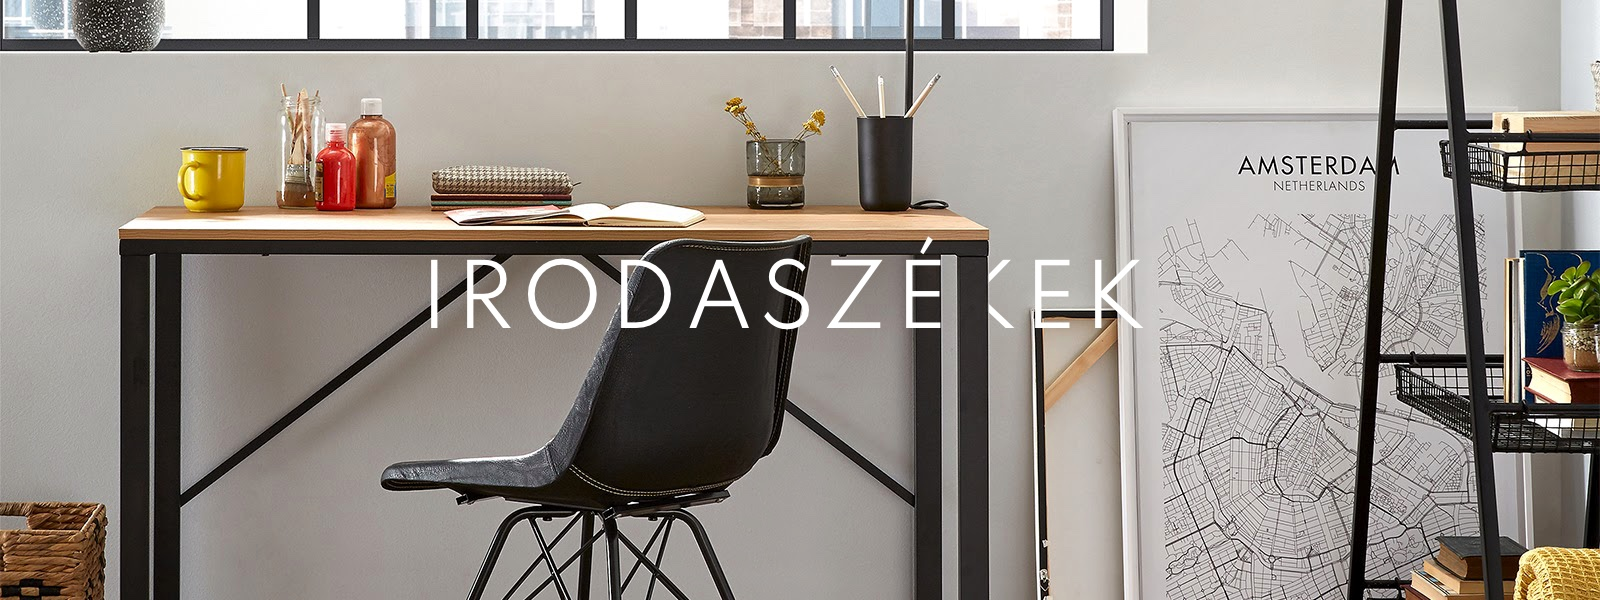 innoshop-irodaszekek-office-chairs.jpg